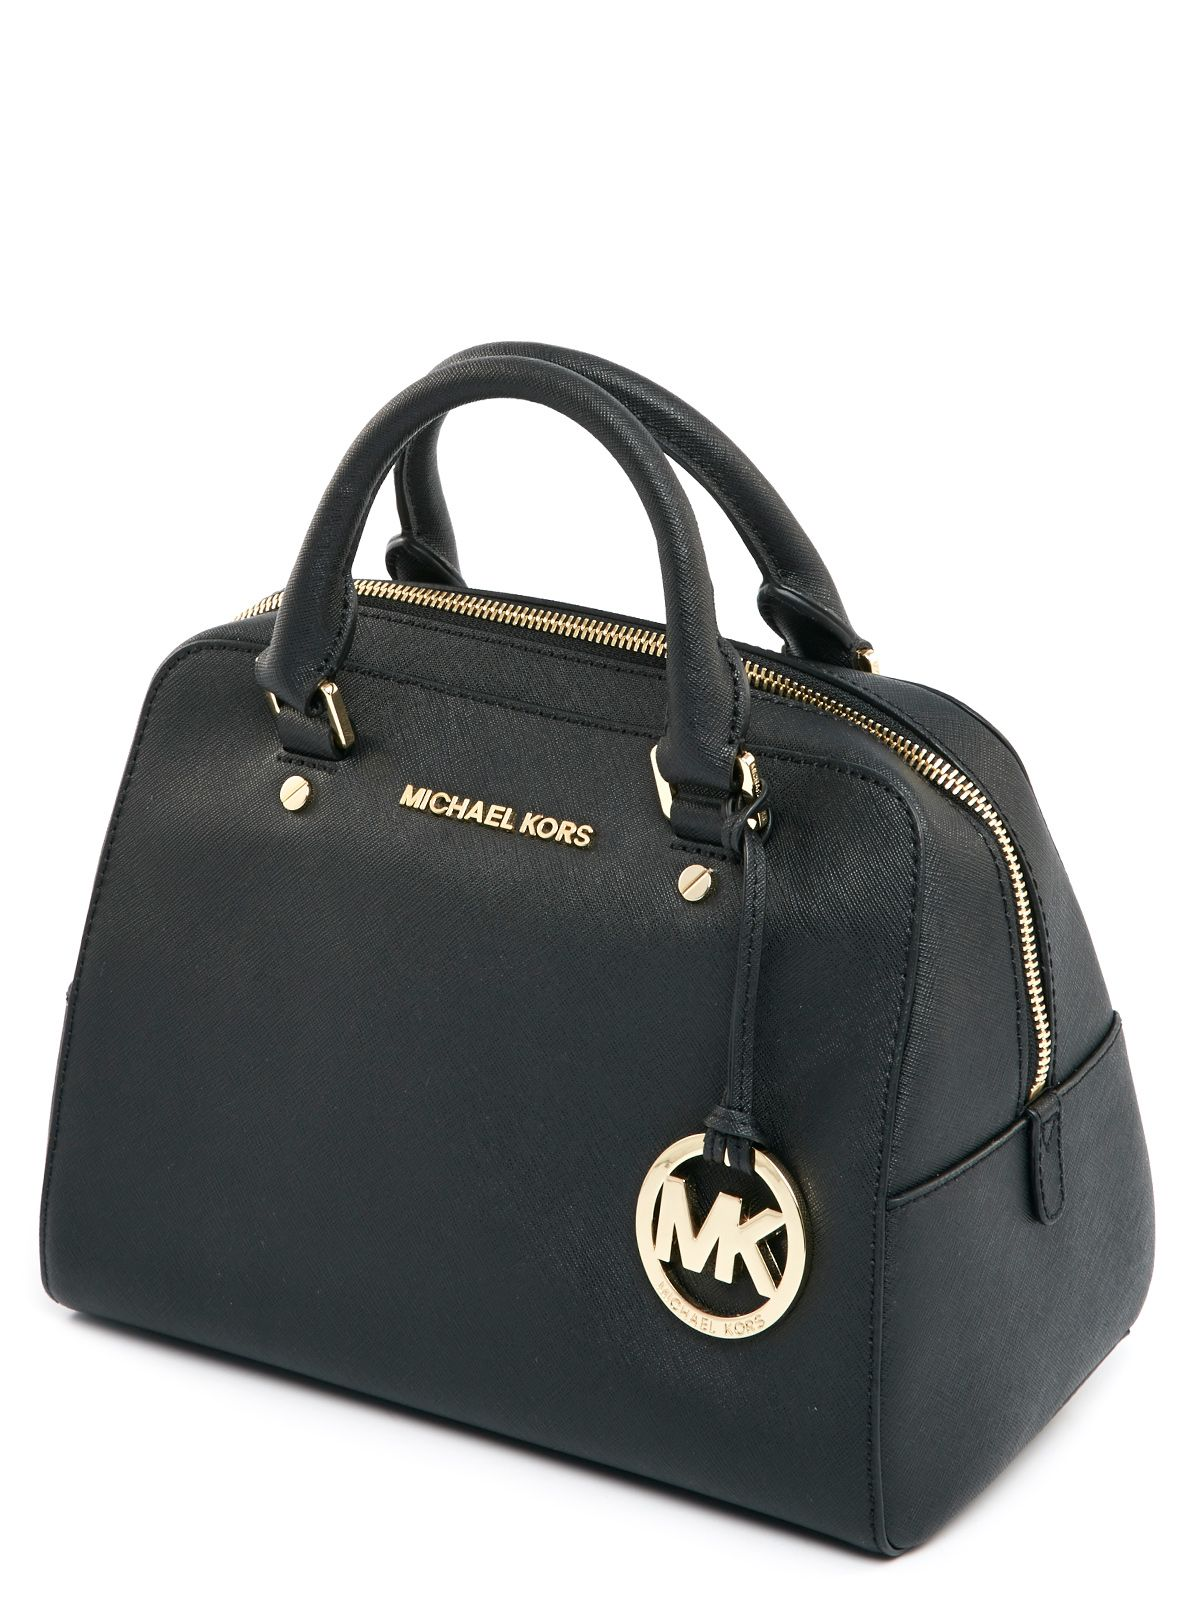 michael kors jet set travel tasche schwarz bags. Black Bedroom Furniture Sets. Home Design Ideas